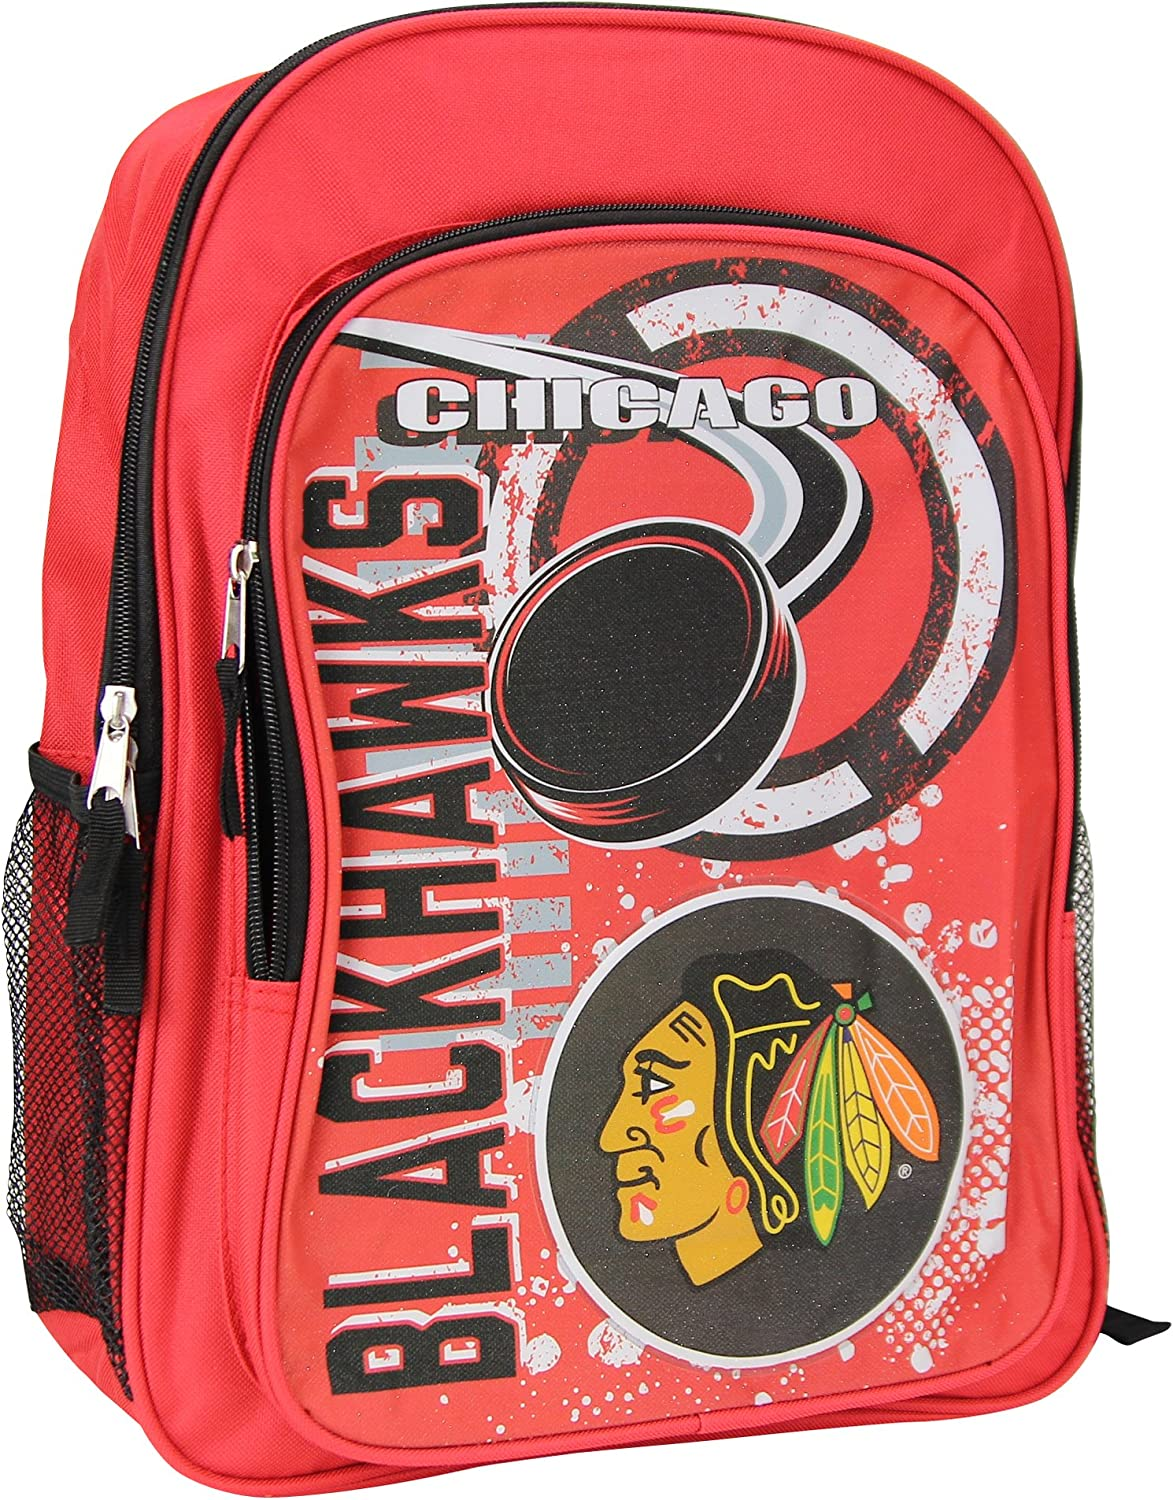 The Northwest Company NHL Blackhawks Backpac Accelerator Spring new work Recommended Chicago